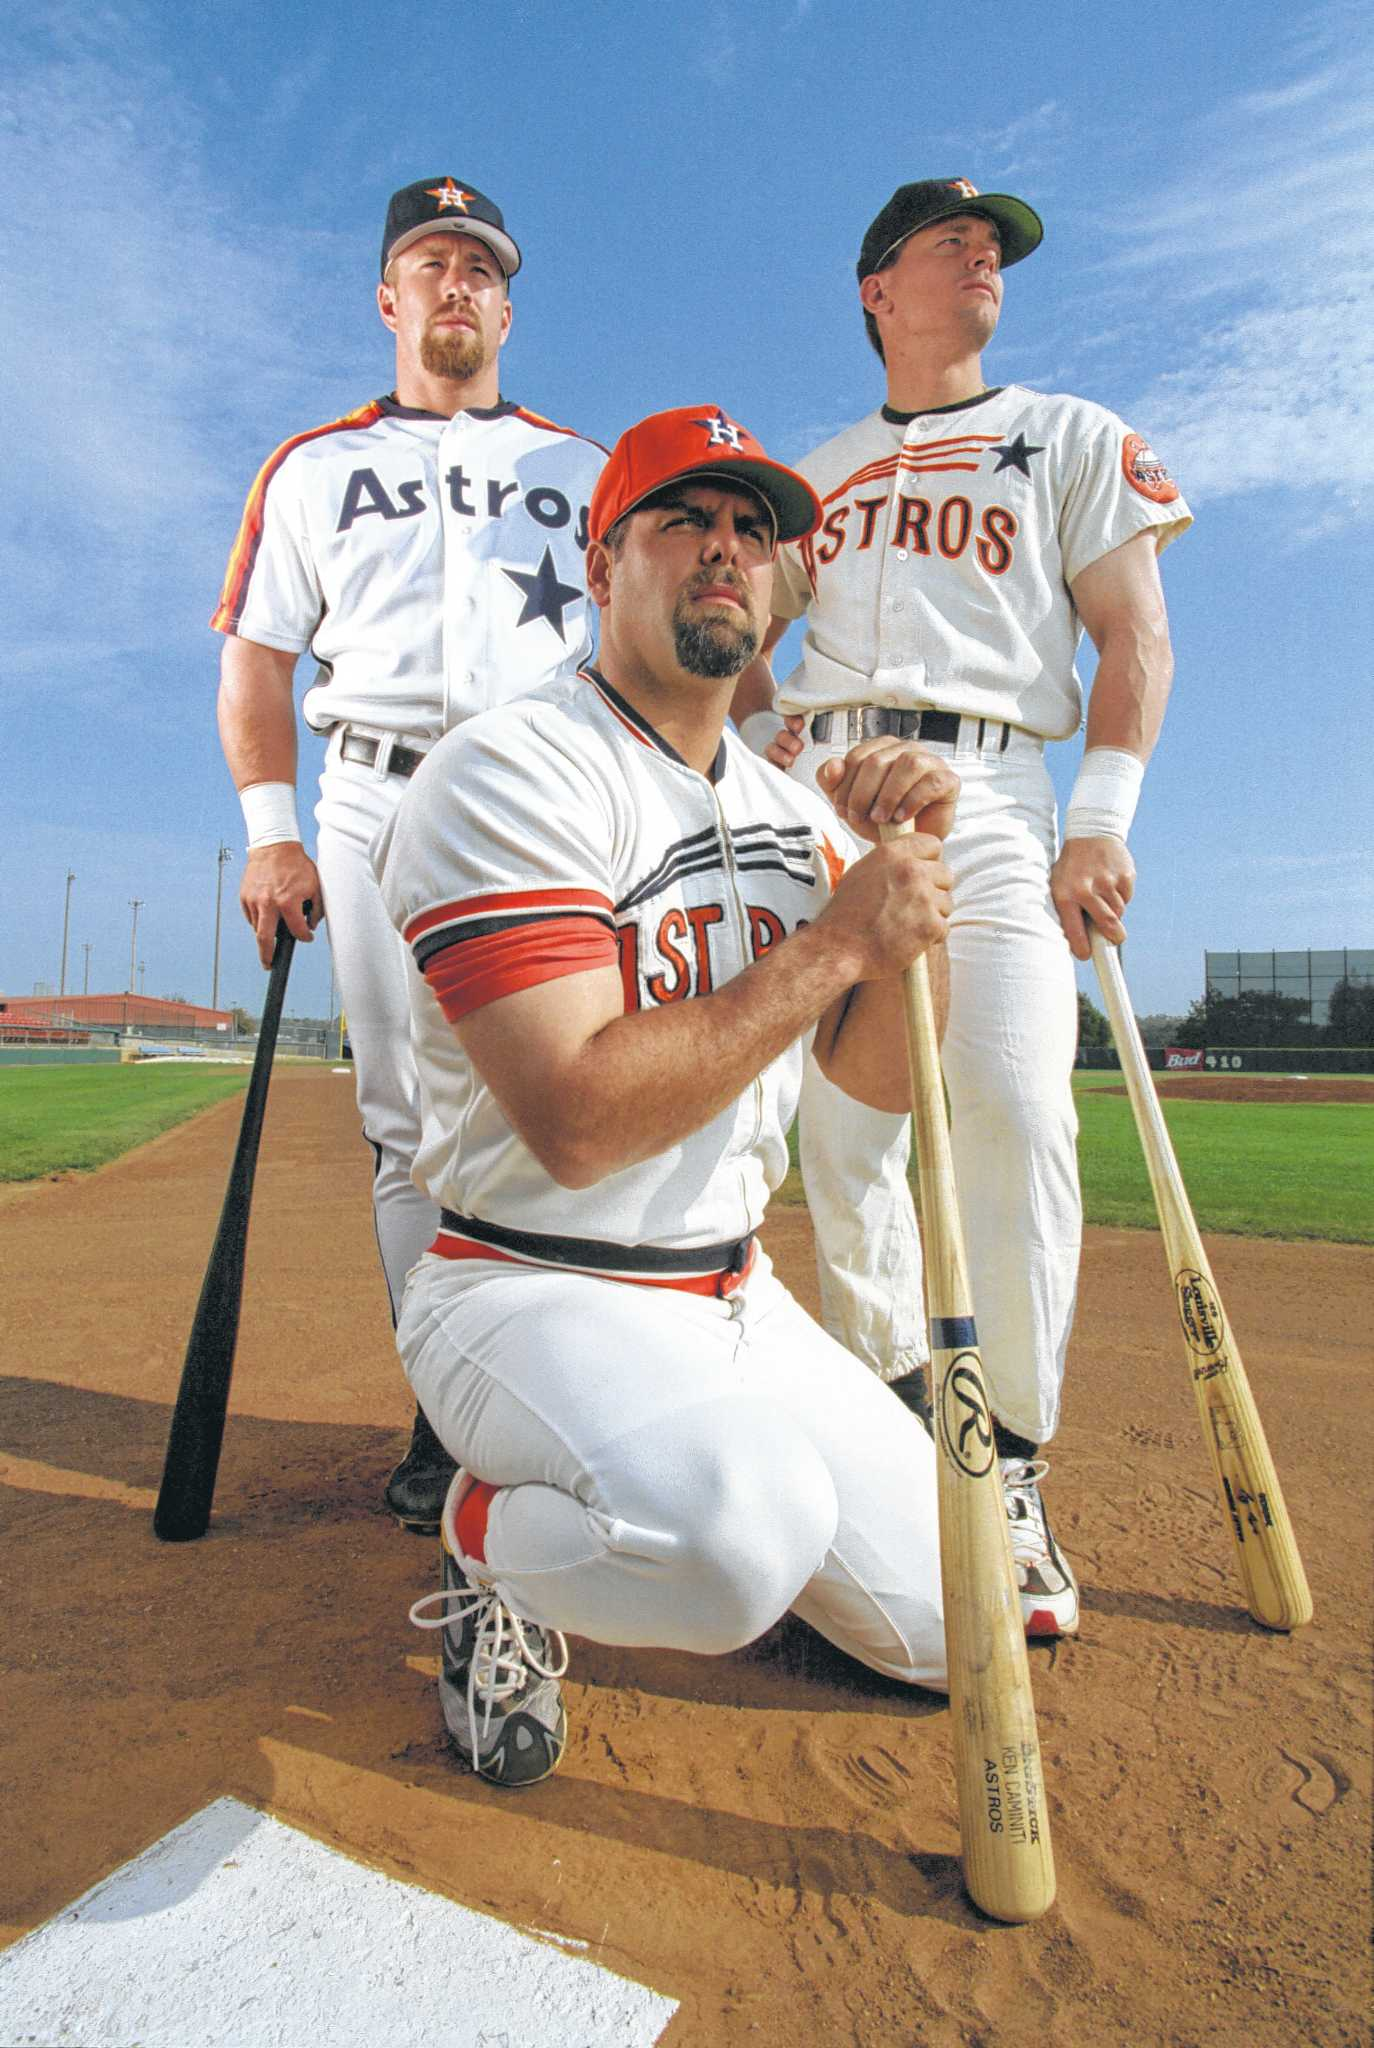 newest 1e60a 2de6f Astros' uniform tradition unlike any other in baseball ...